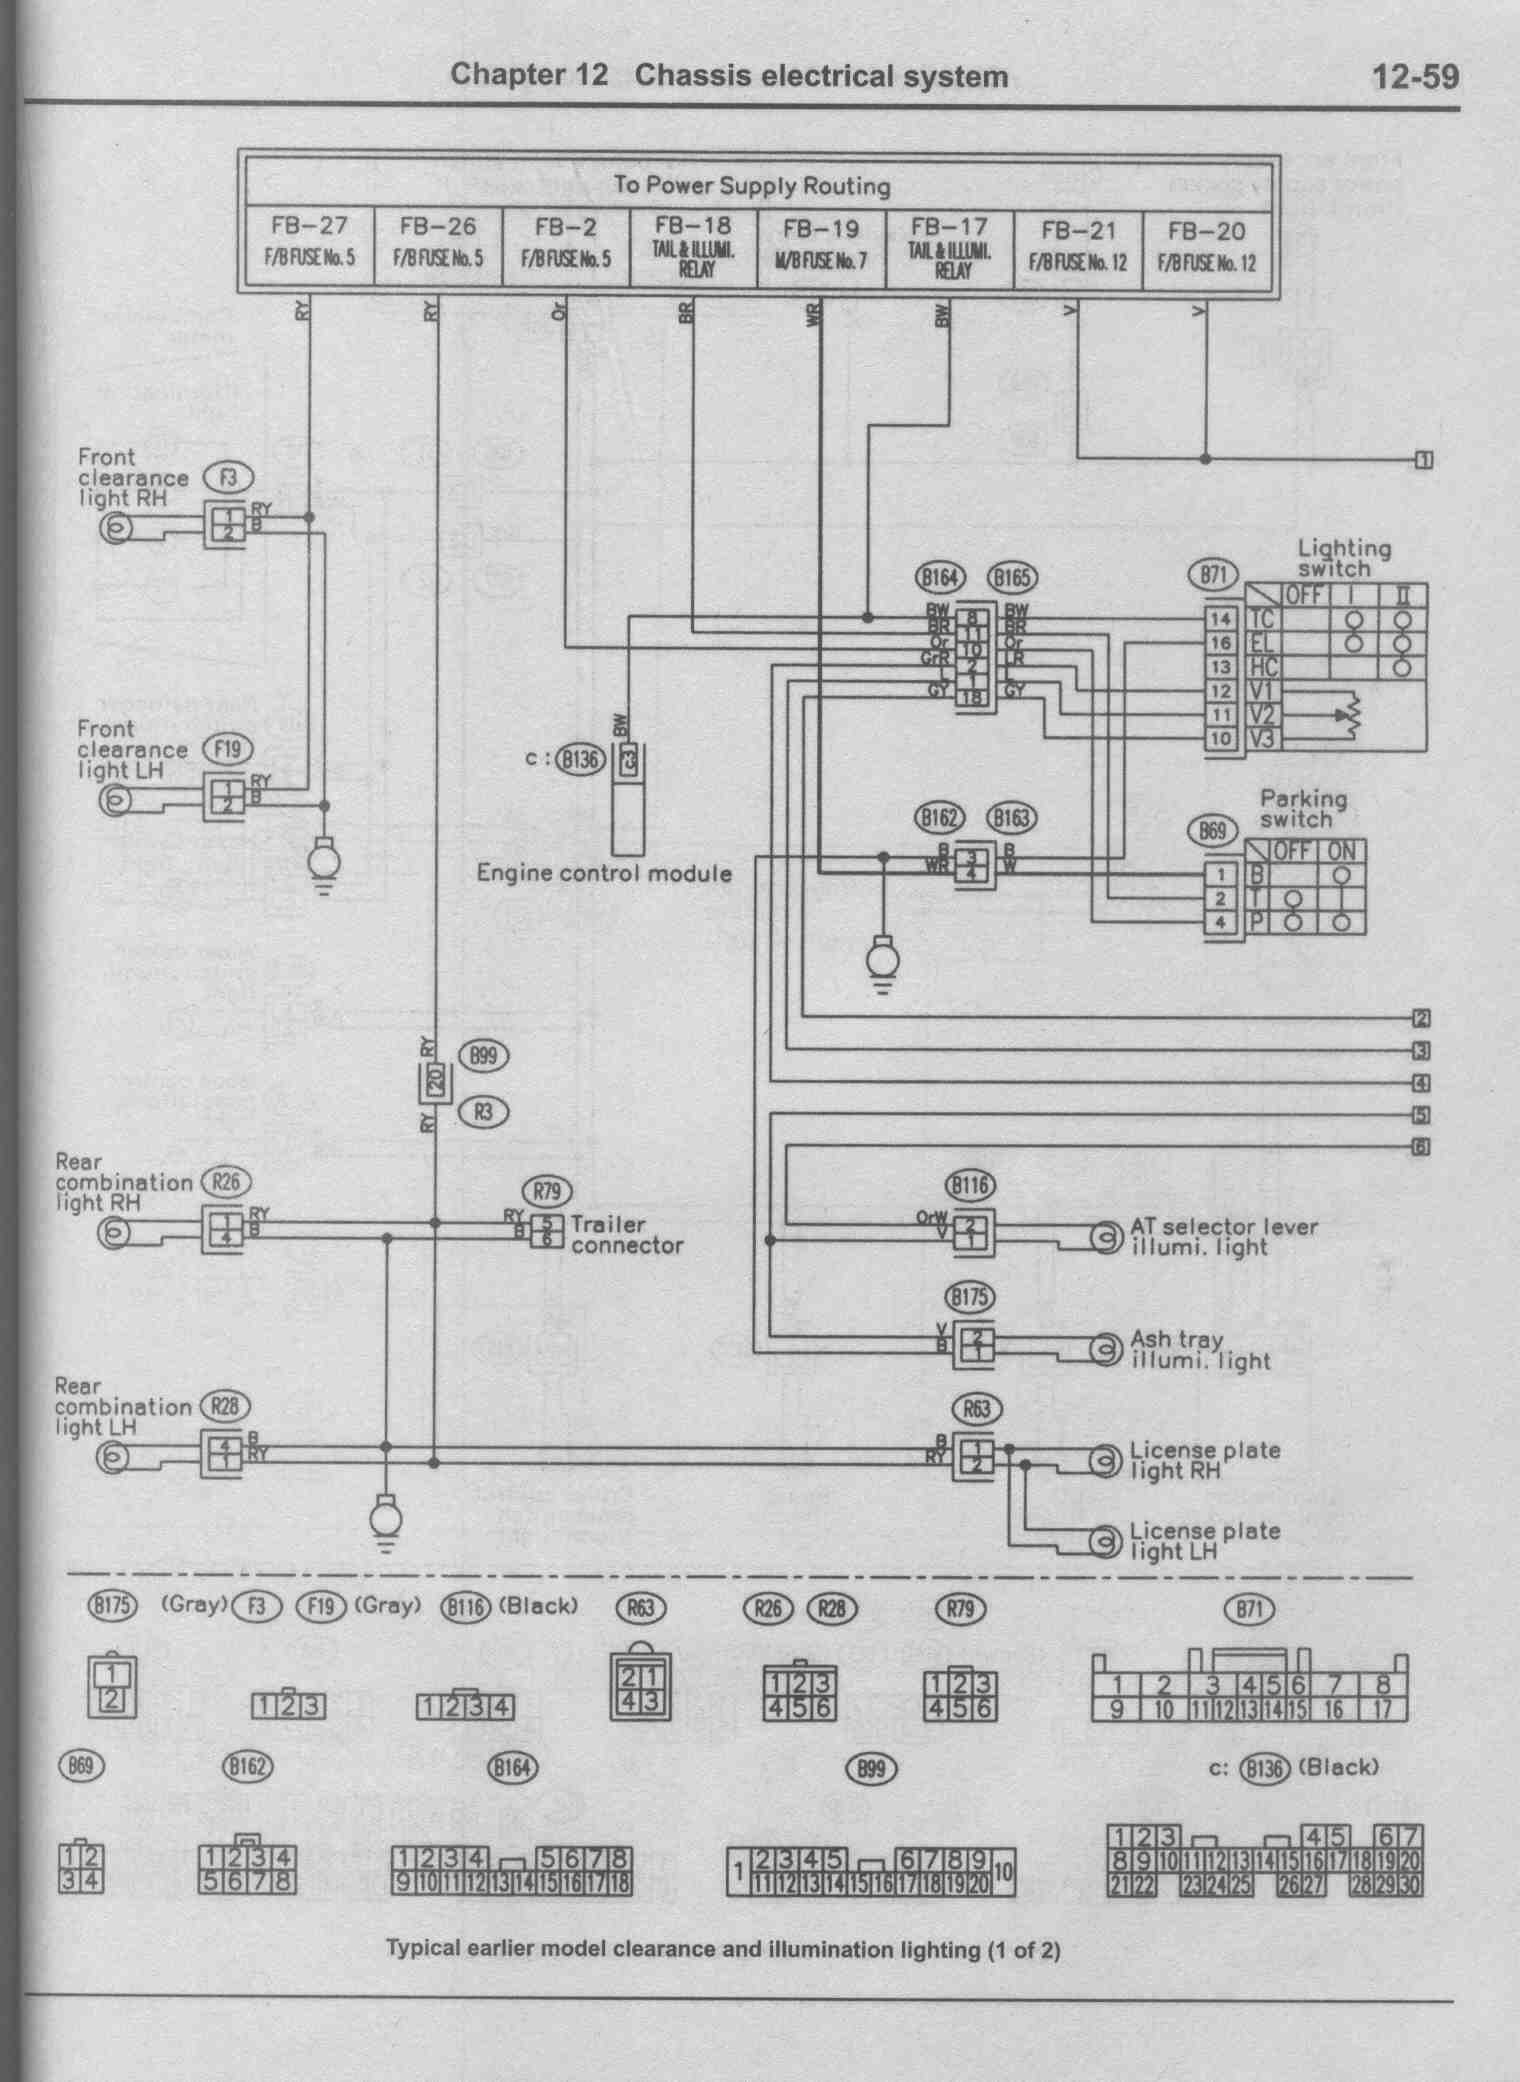 1998 Subaru Forester Wiring Diagram